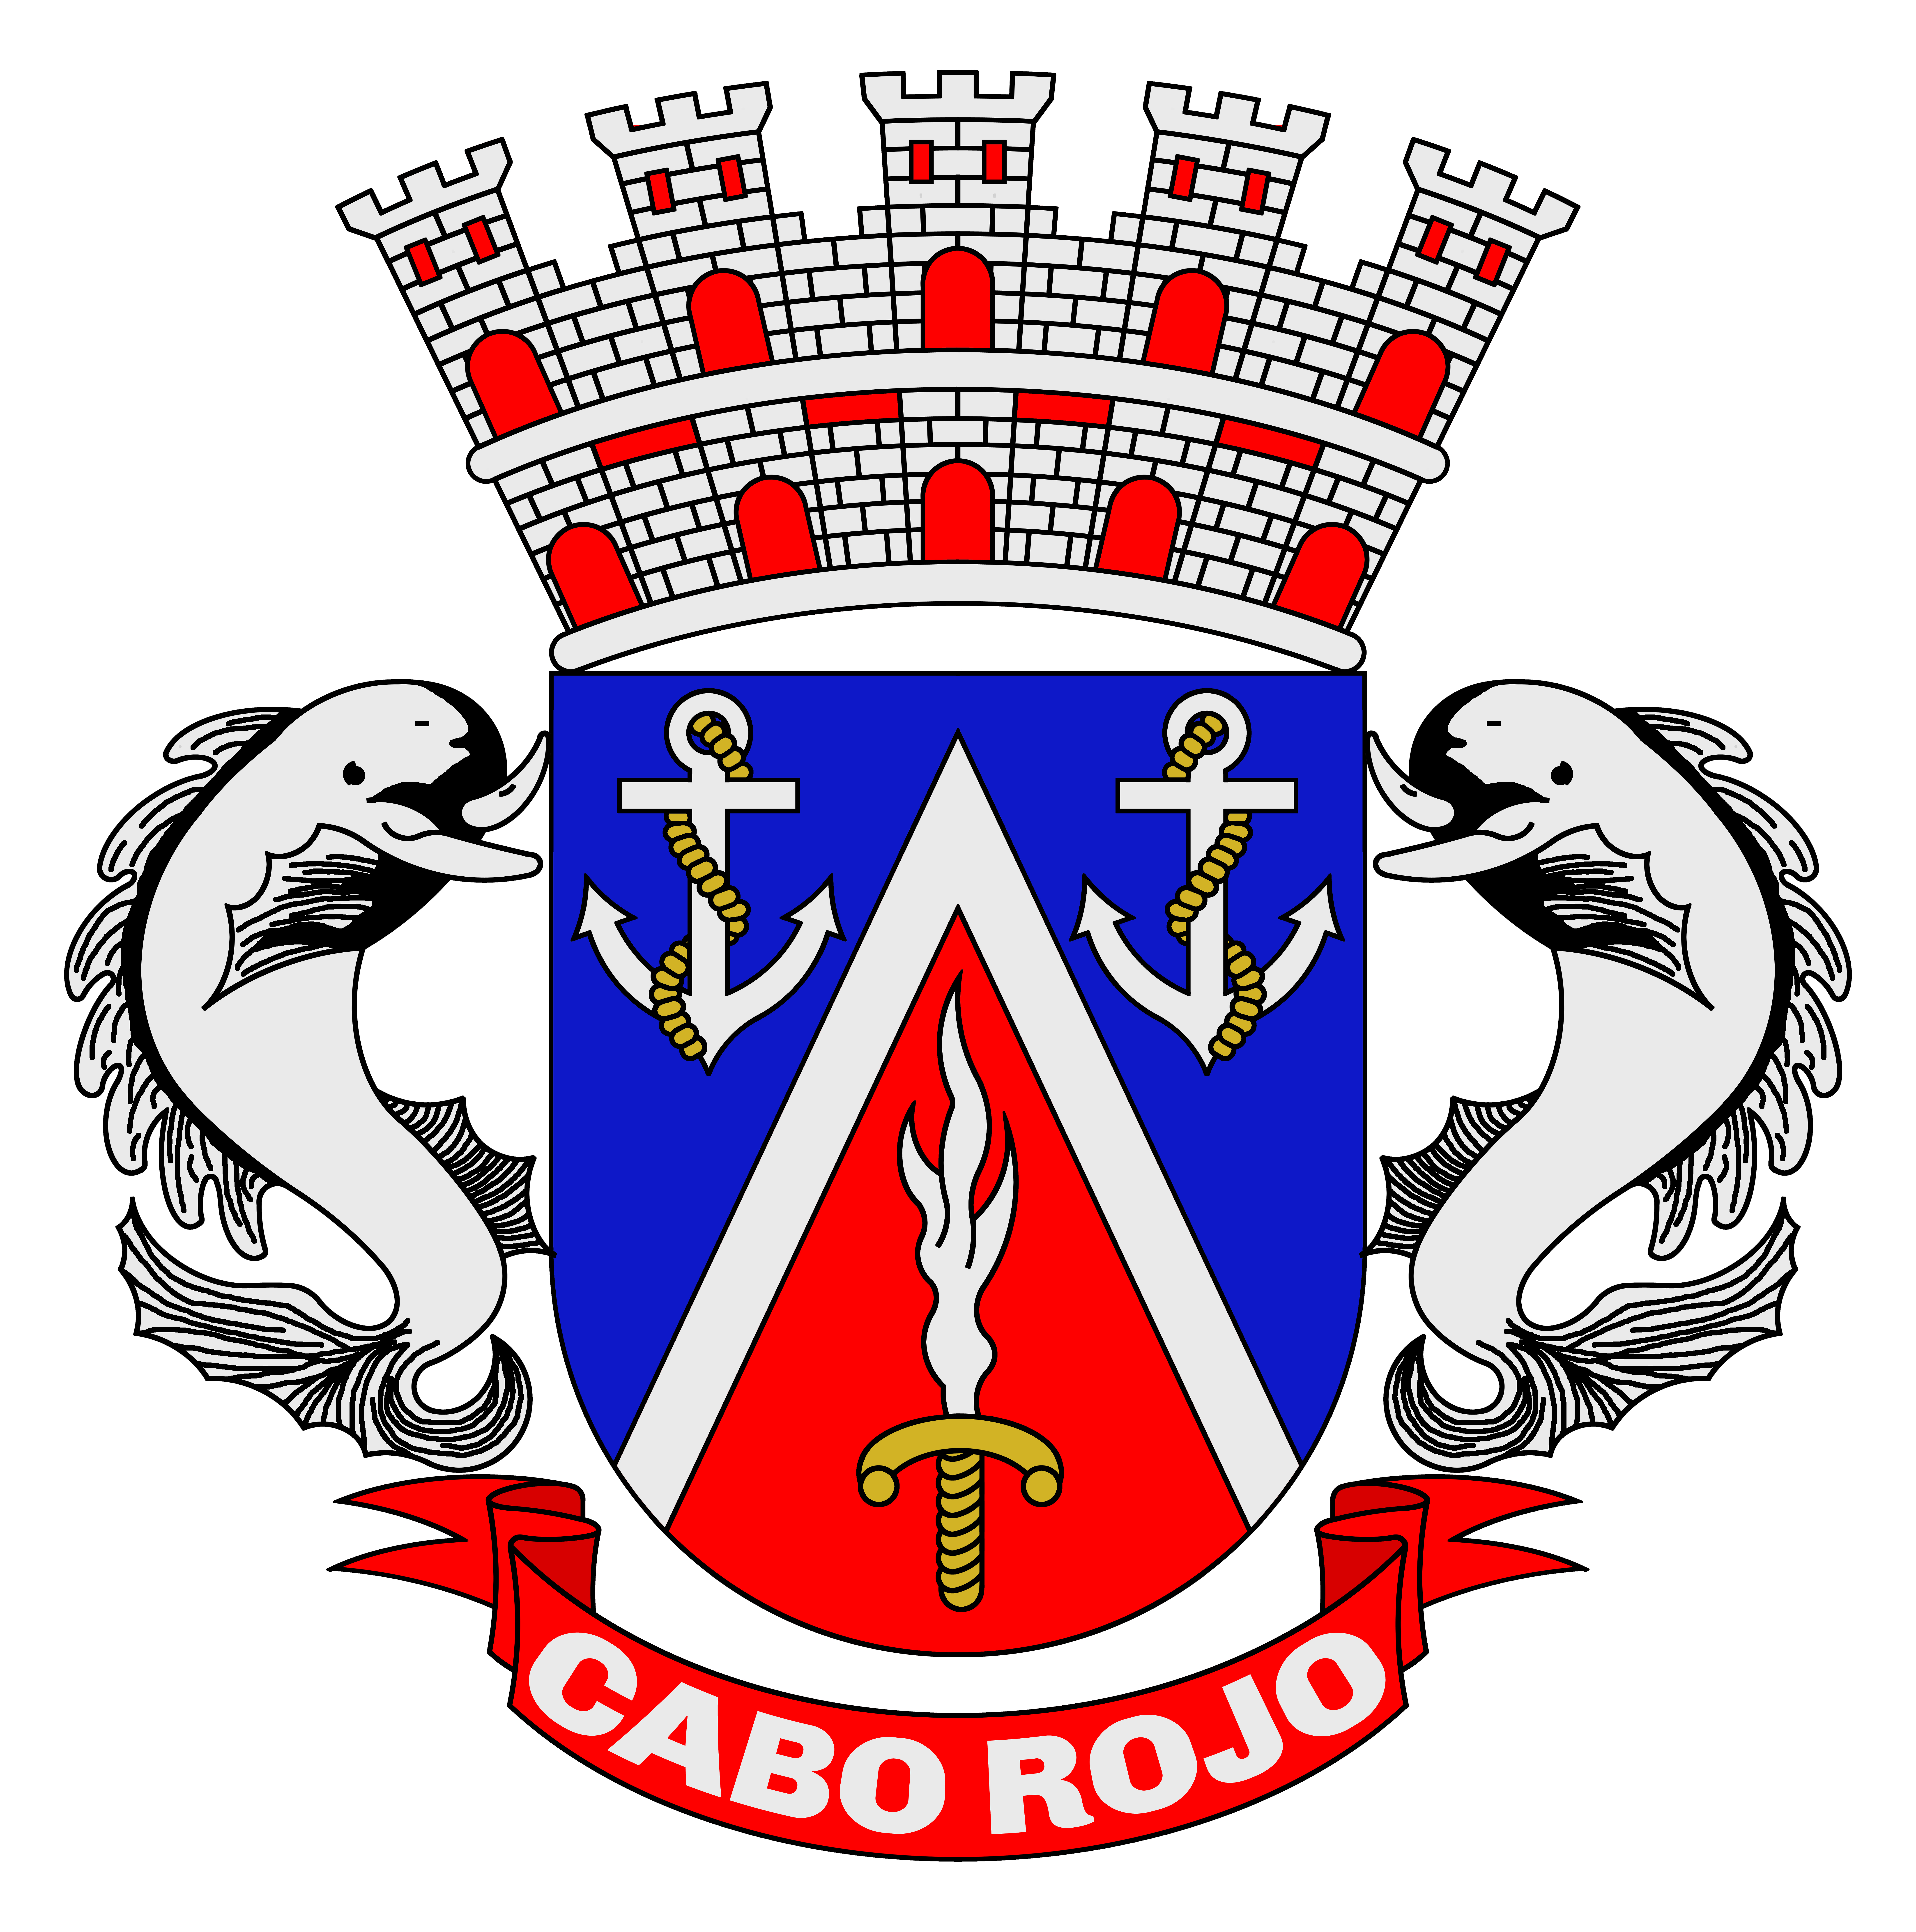 Depiction of Cabo Rojo